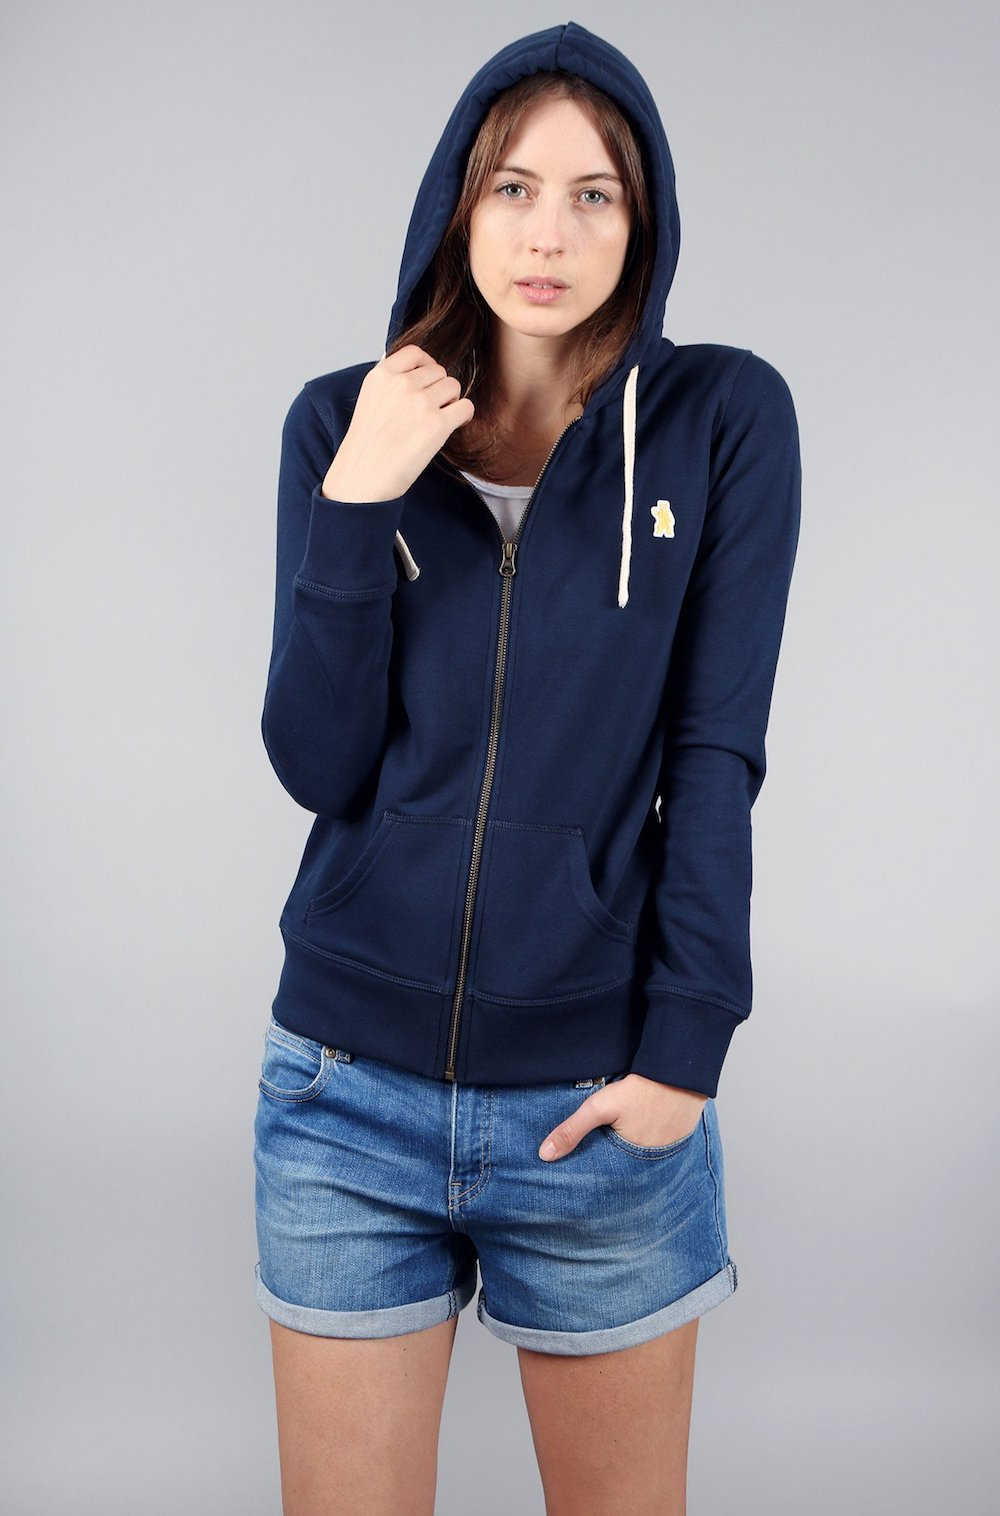 Absolutely Bear The Corsic Navy Organic Cotton Zipped Eco Friendly Ethical Hoodie